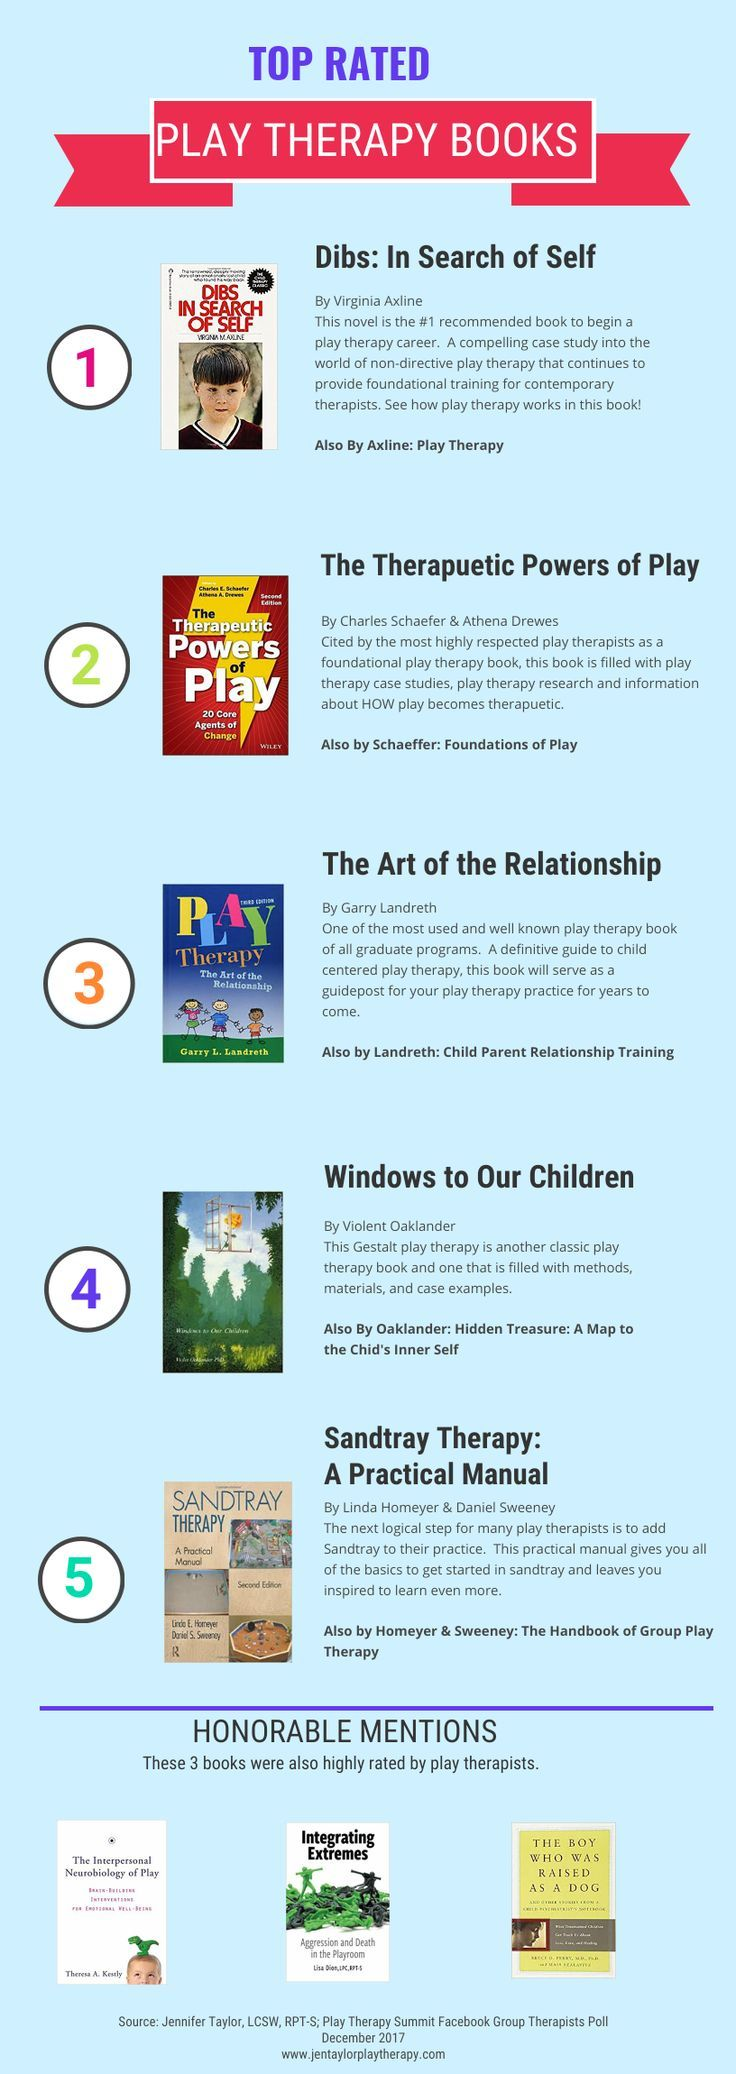 Must Read Play Therapy Books as Chosen by play therapists from the 2017 Play Therapy Summit Facebook Group. Included books discuss play therapy case studies, play therapy research, play therapy interventions and multiple play therapy theories.